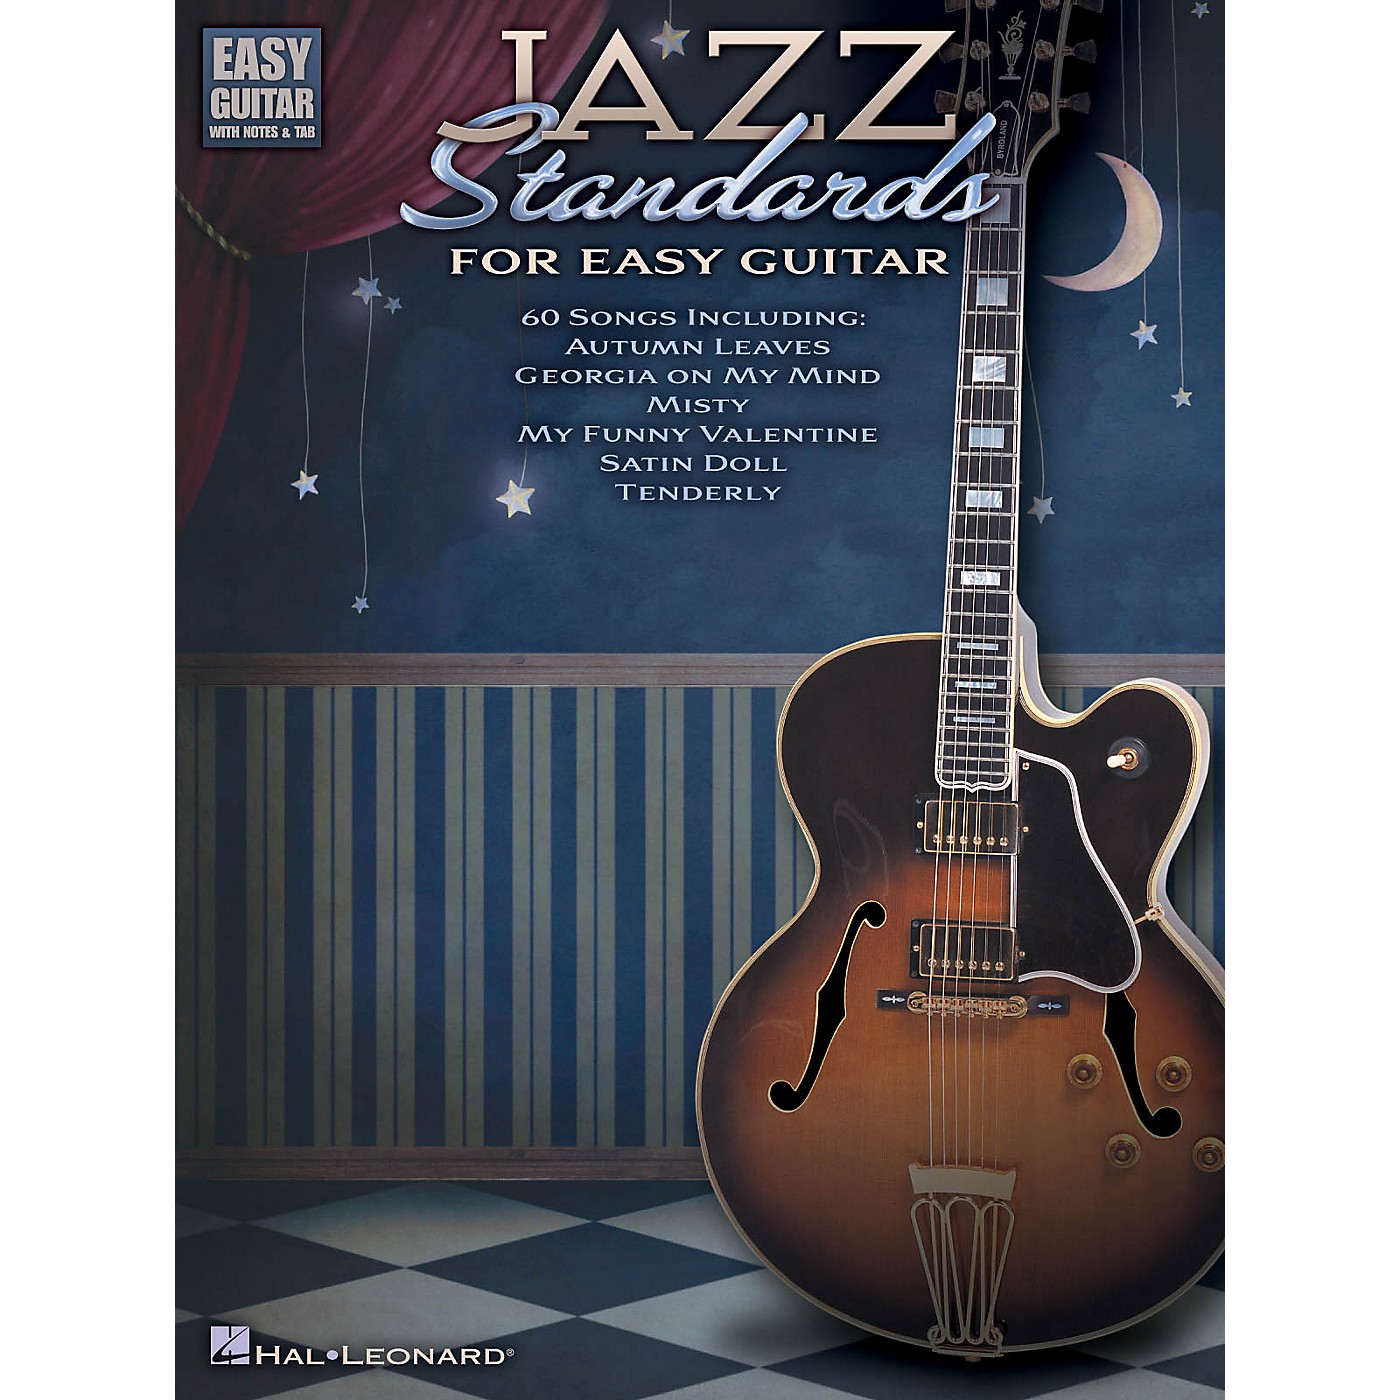 Hal Leonard Jazz Standards for Easy Guitar (Includes Tab) Easy Guitar Series Softcover thumbnail